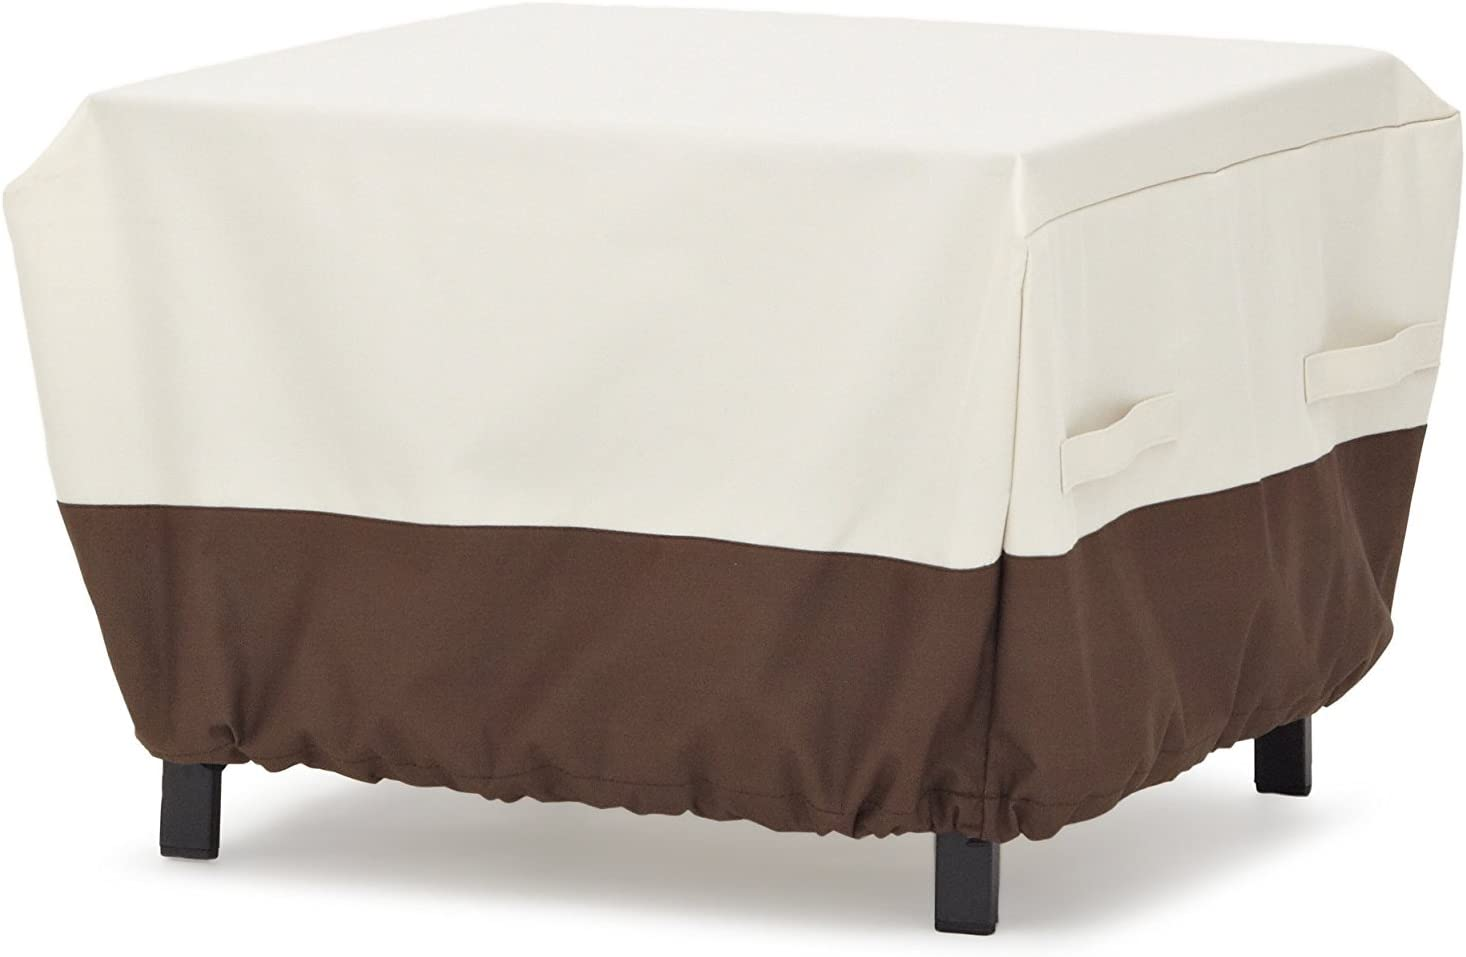 AmazonBasics Ottoman Outdoor Patio Furniture Cover